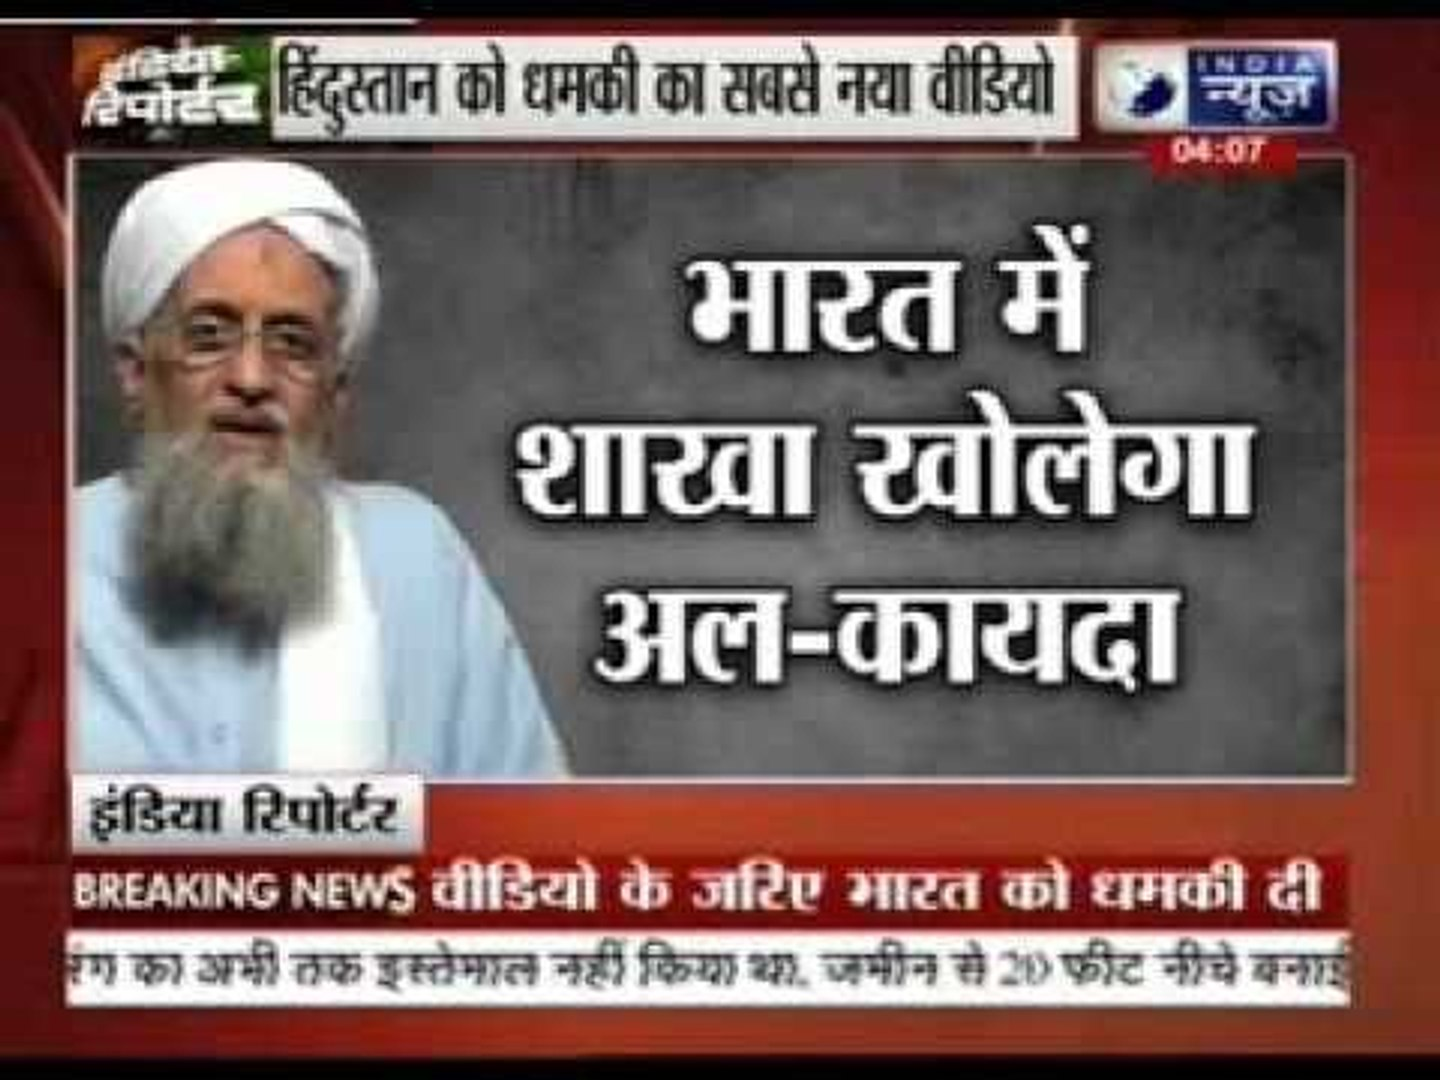 Al-Qaeda declares new front to wage war on India